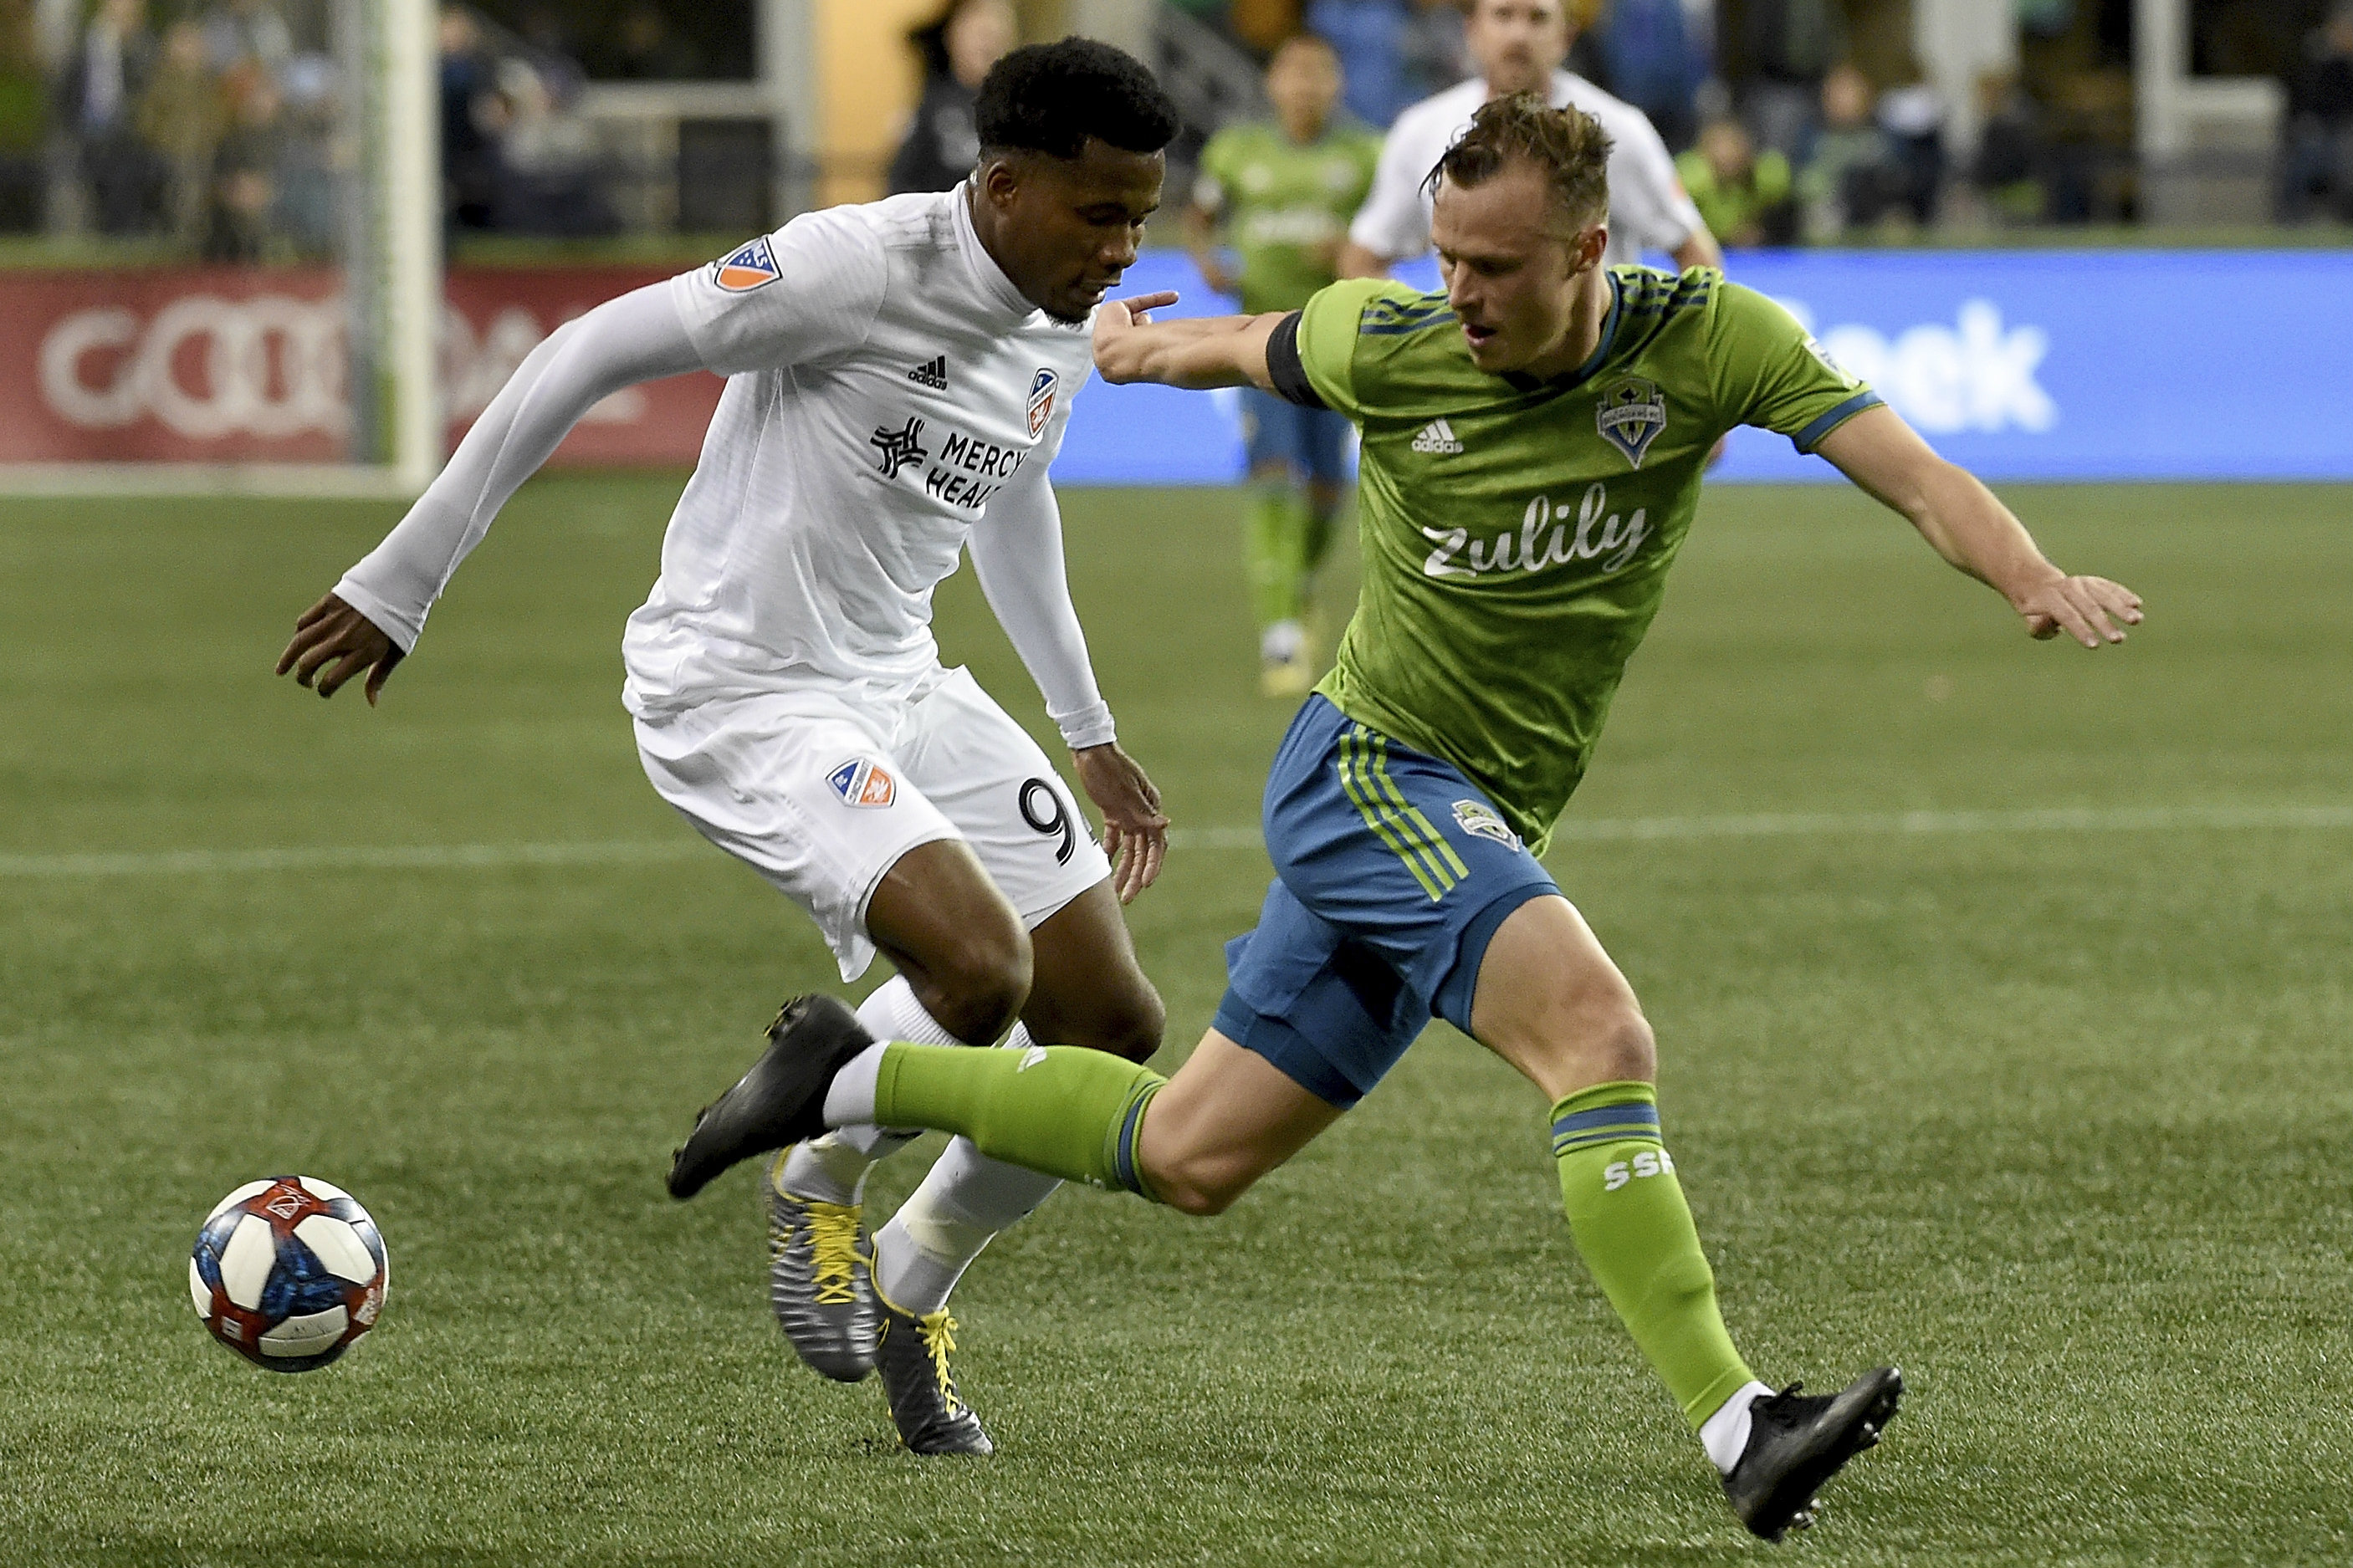 Brad Smith's Seattle Sounders can consolidate second spot in the Western Conference with a win this weekend